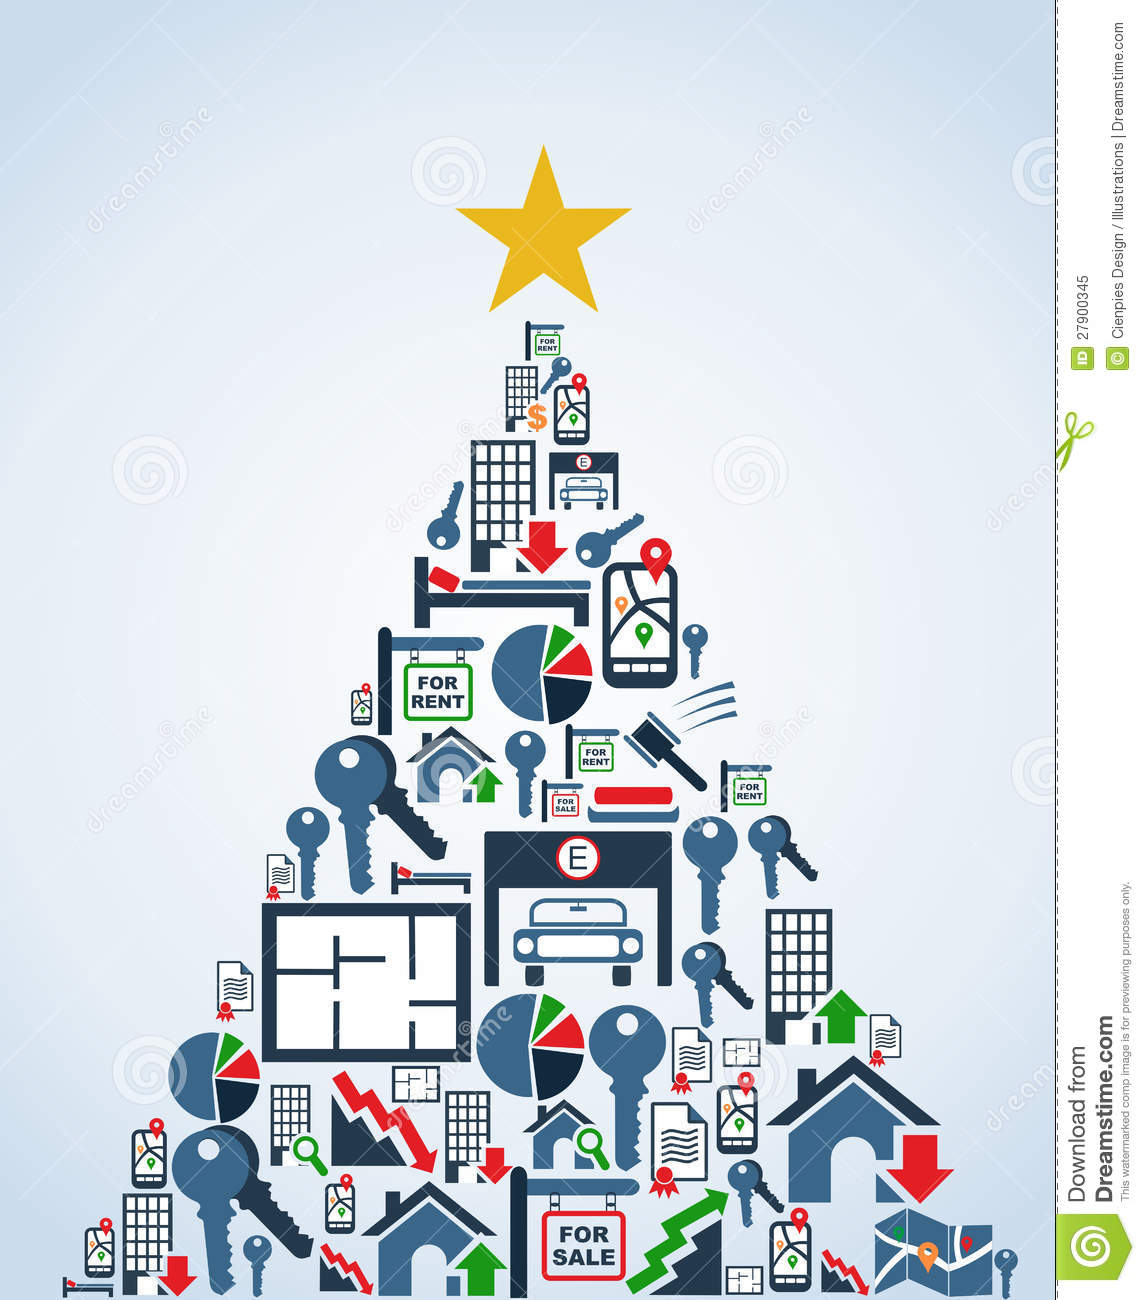 Real estate industry icons christmas tree stock vector real estate industry icons christmas tree m4hsunfo